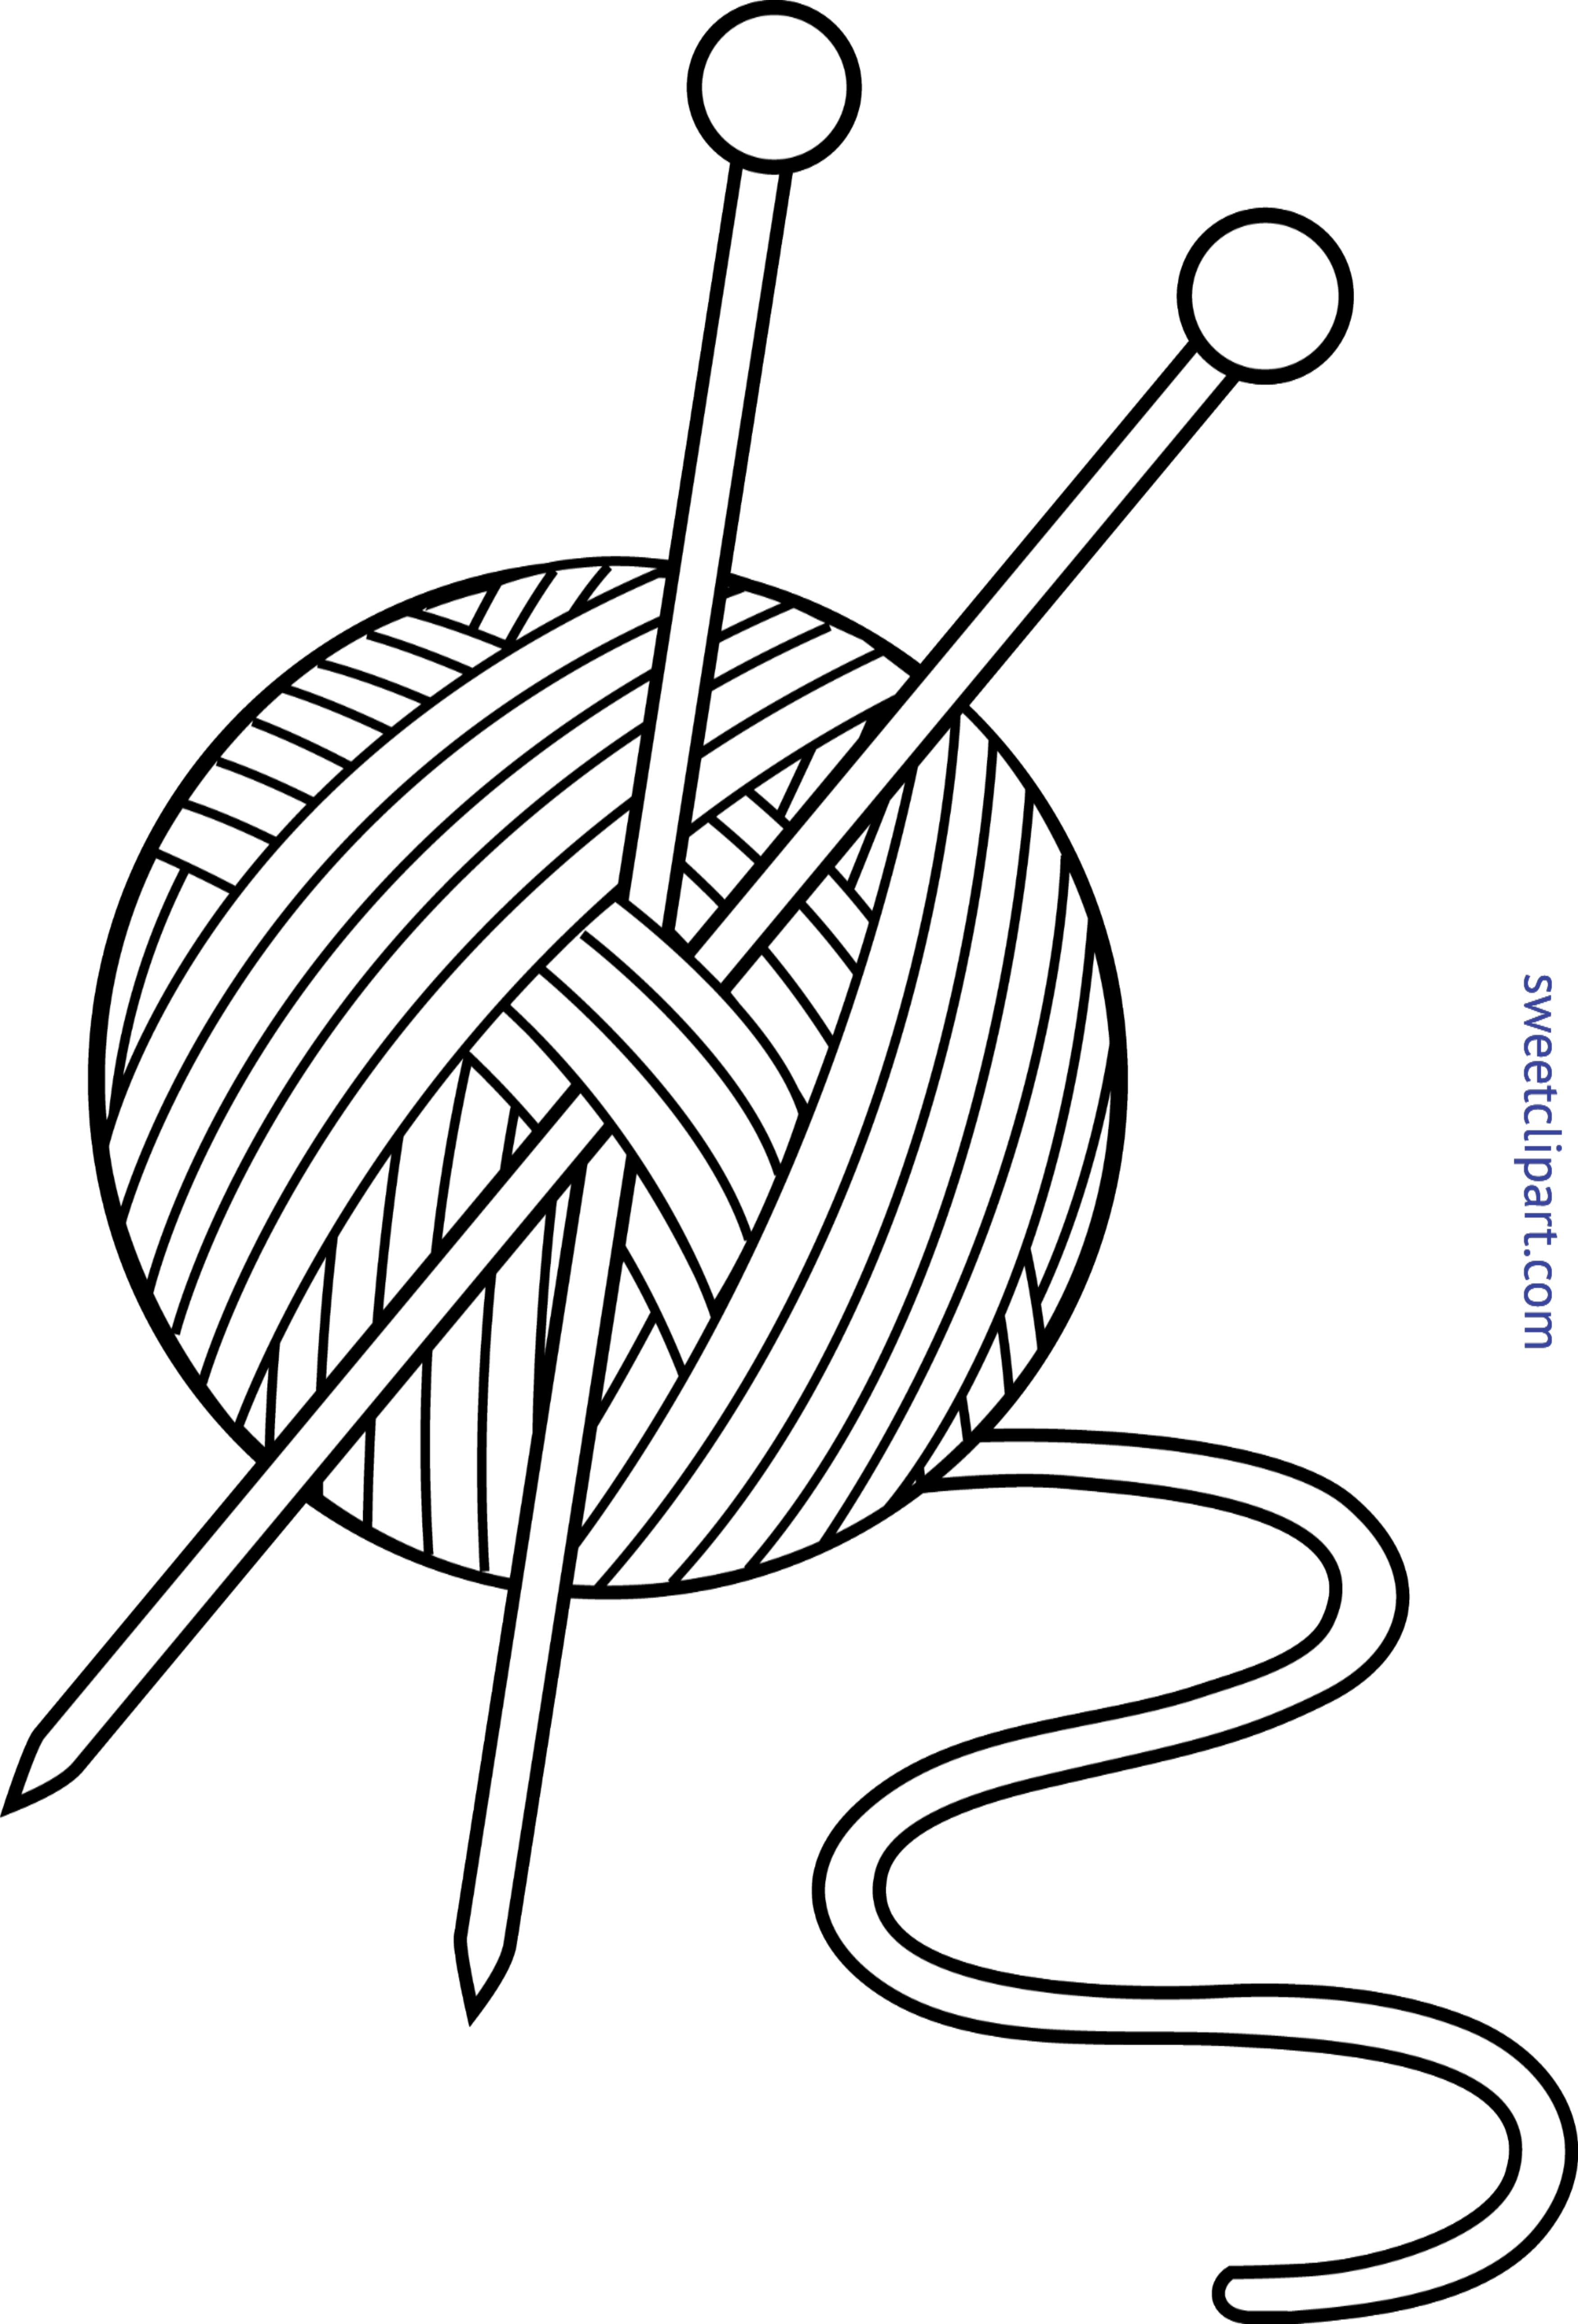 Heart Shaped Ball Of Yarn Ball Of Yarn Love Pattern Heart Png Transparent Clipart Image And Psd File For Free Download Heart Clip Art Yarn Knitting Tattoo